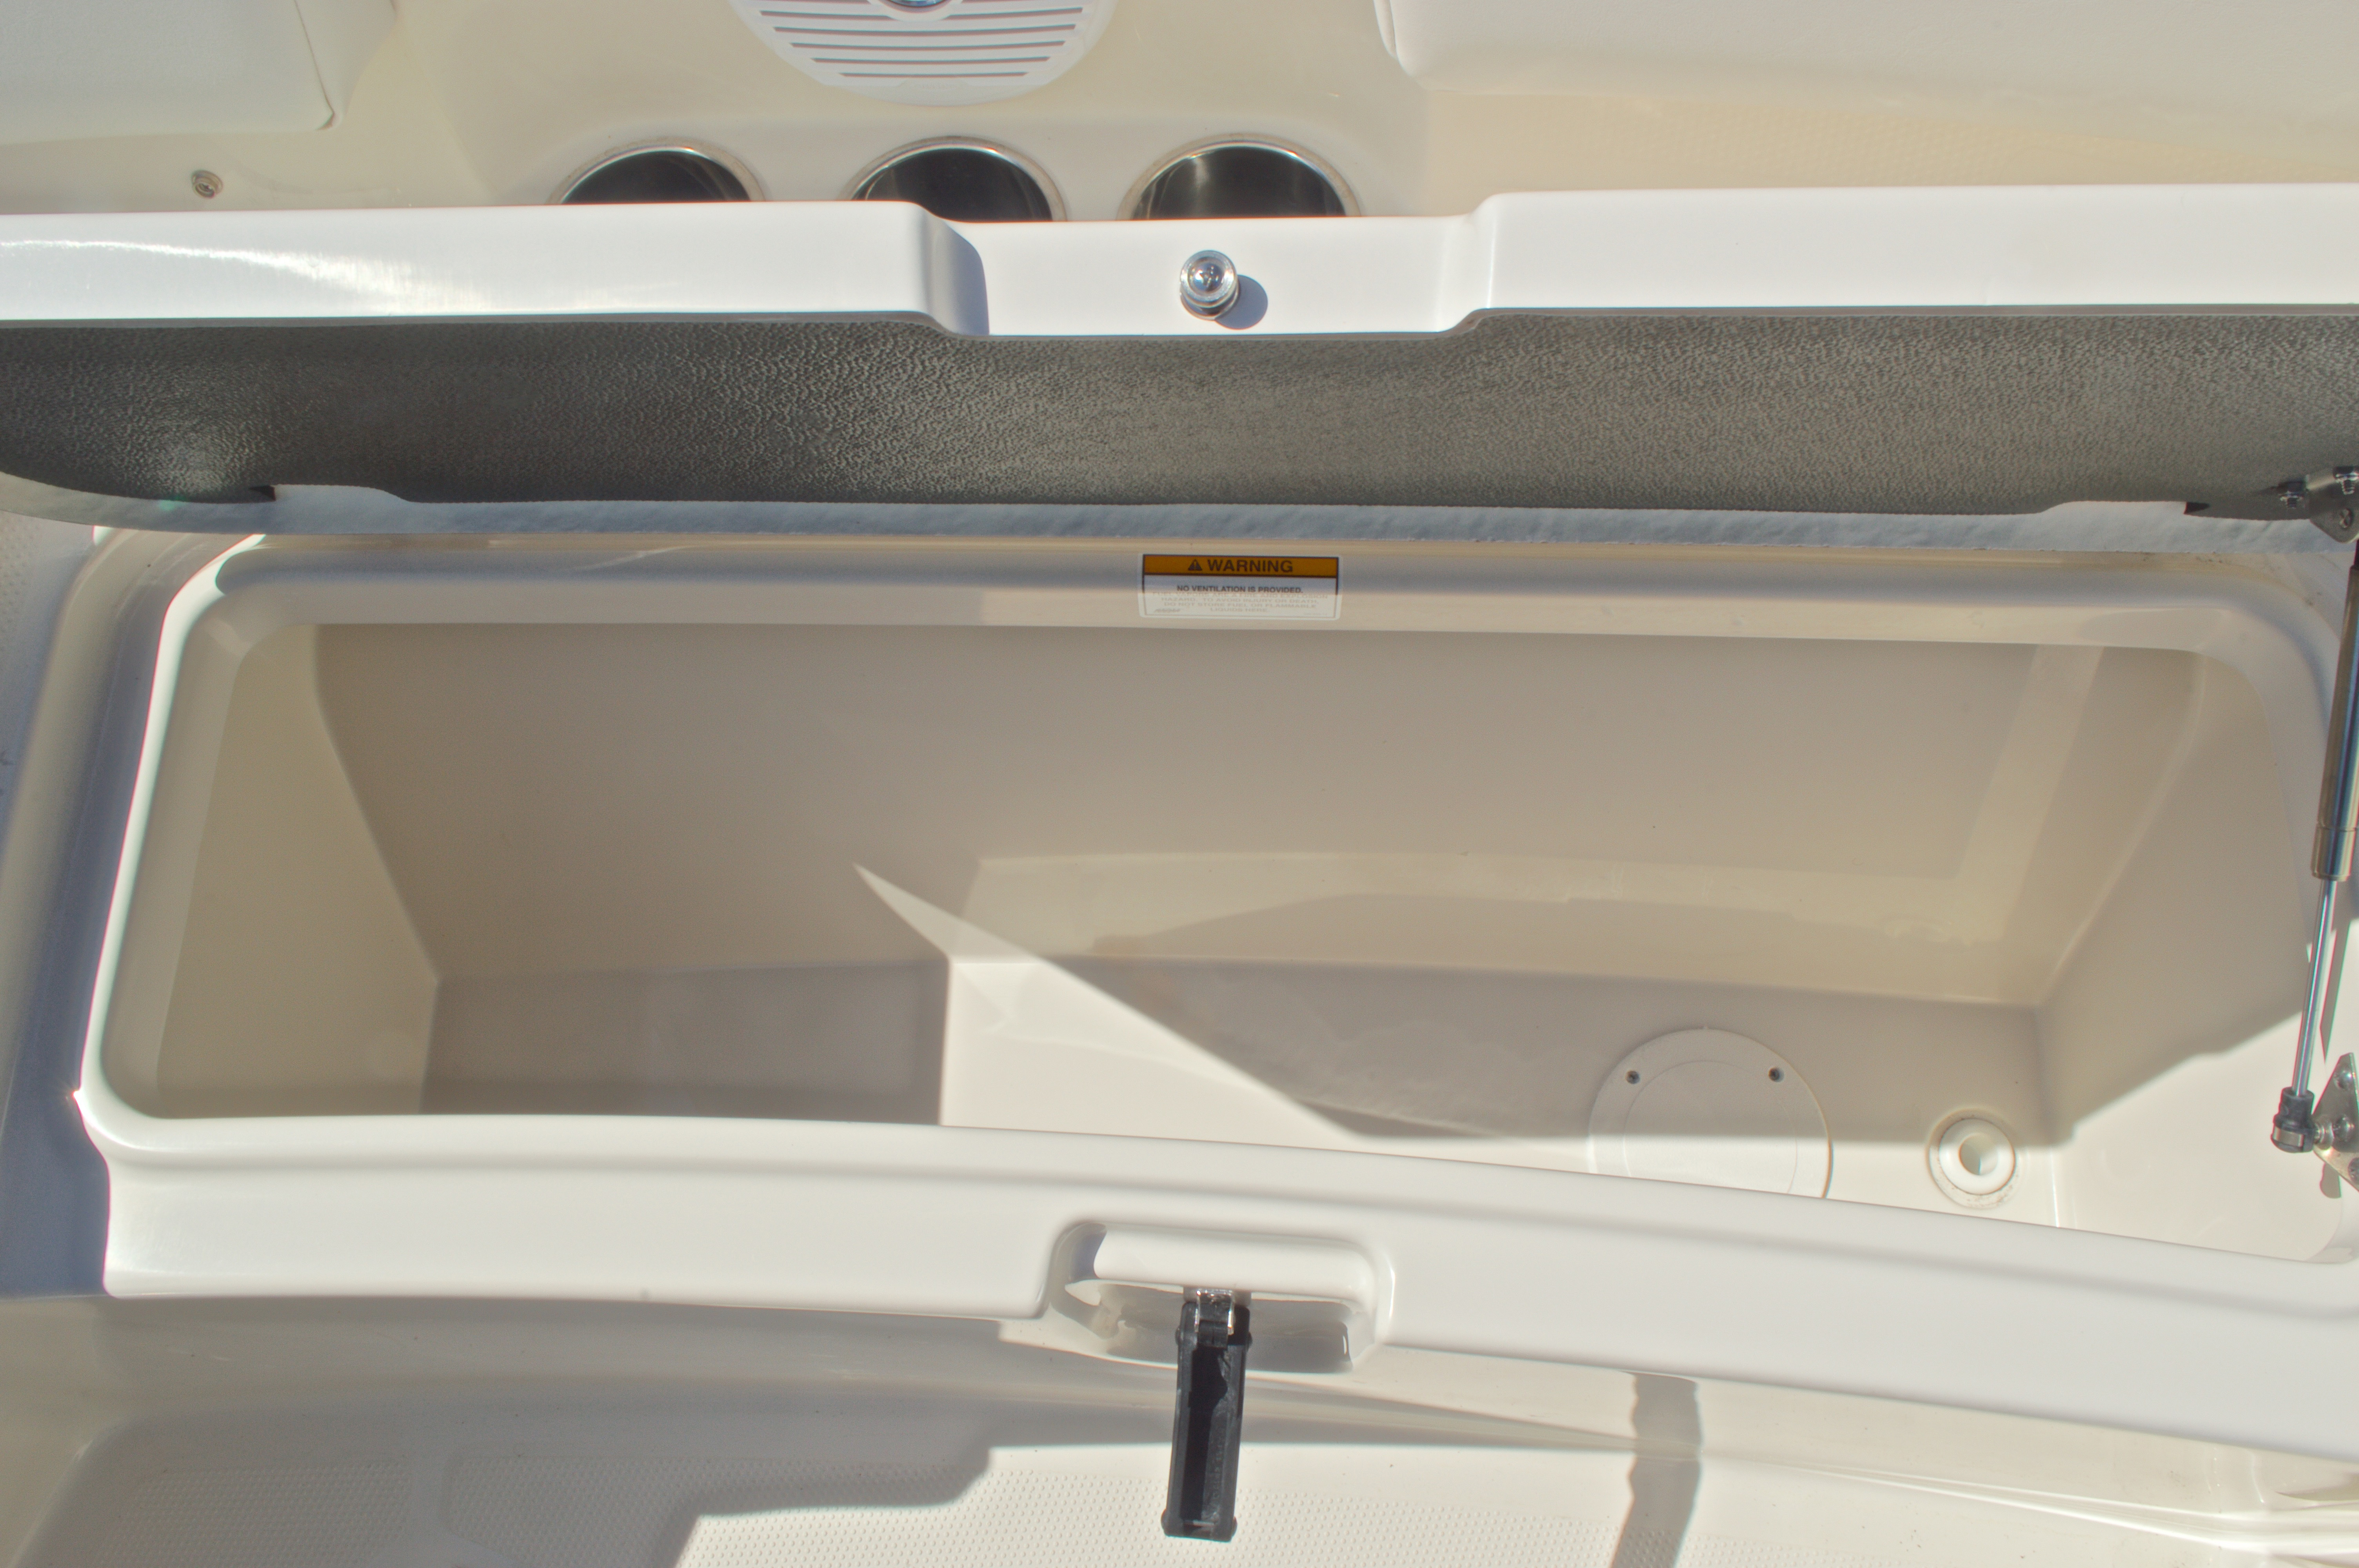 Thumbnail 73 for New 2016 Sailfish 325 Dual Console boat for sale in West Palm Beach, FL